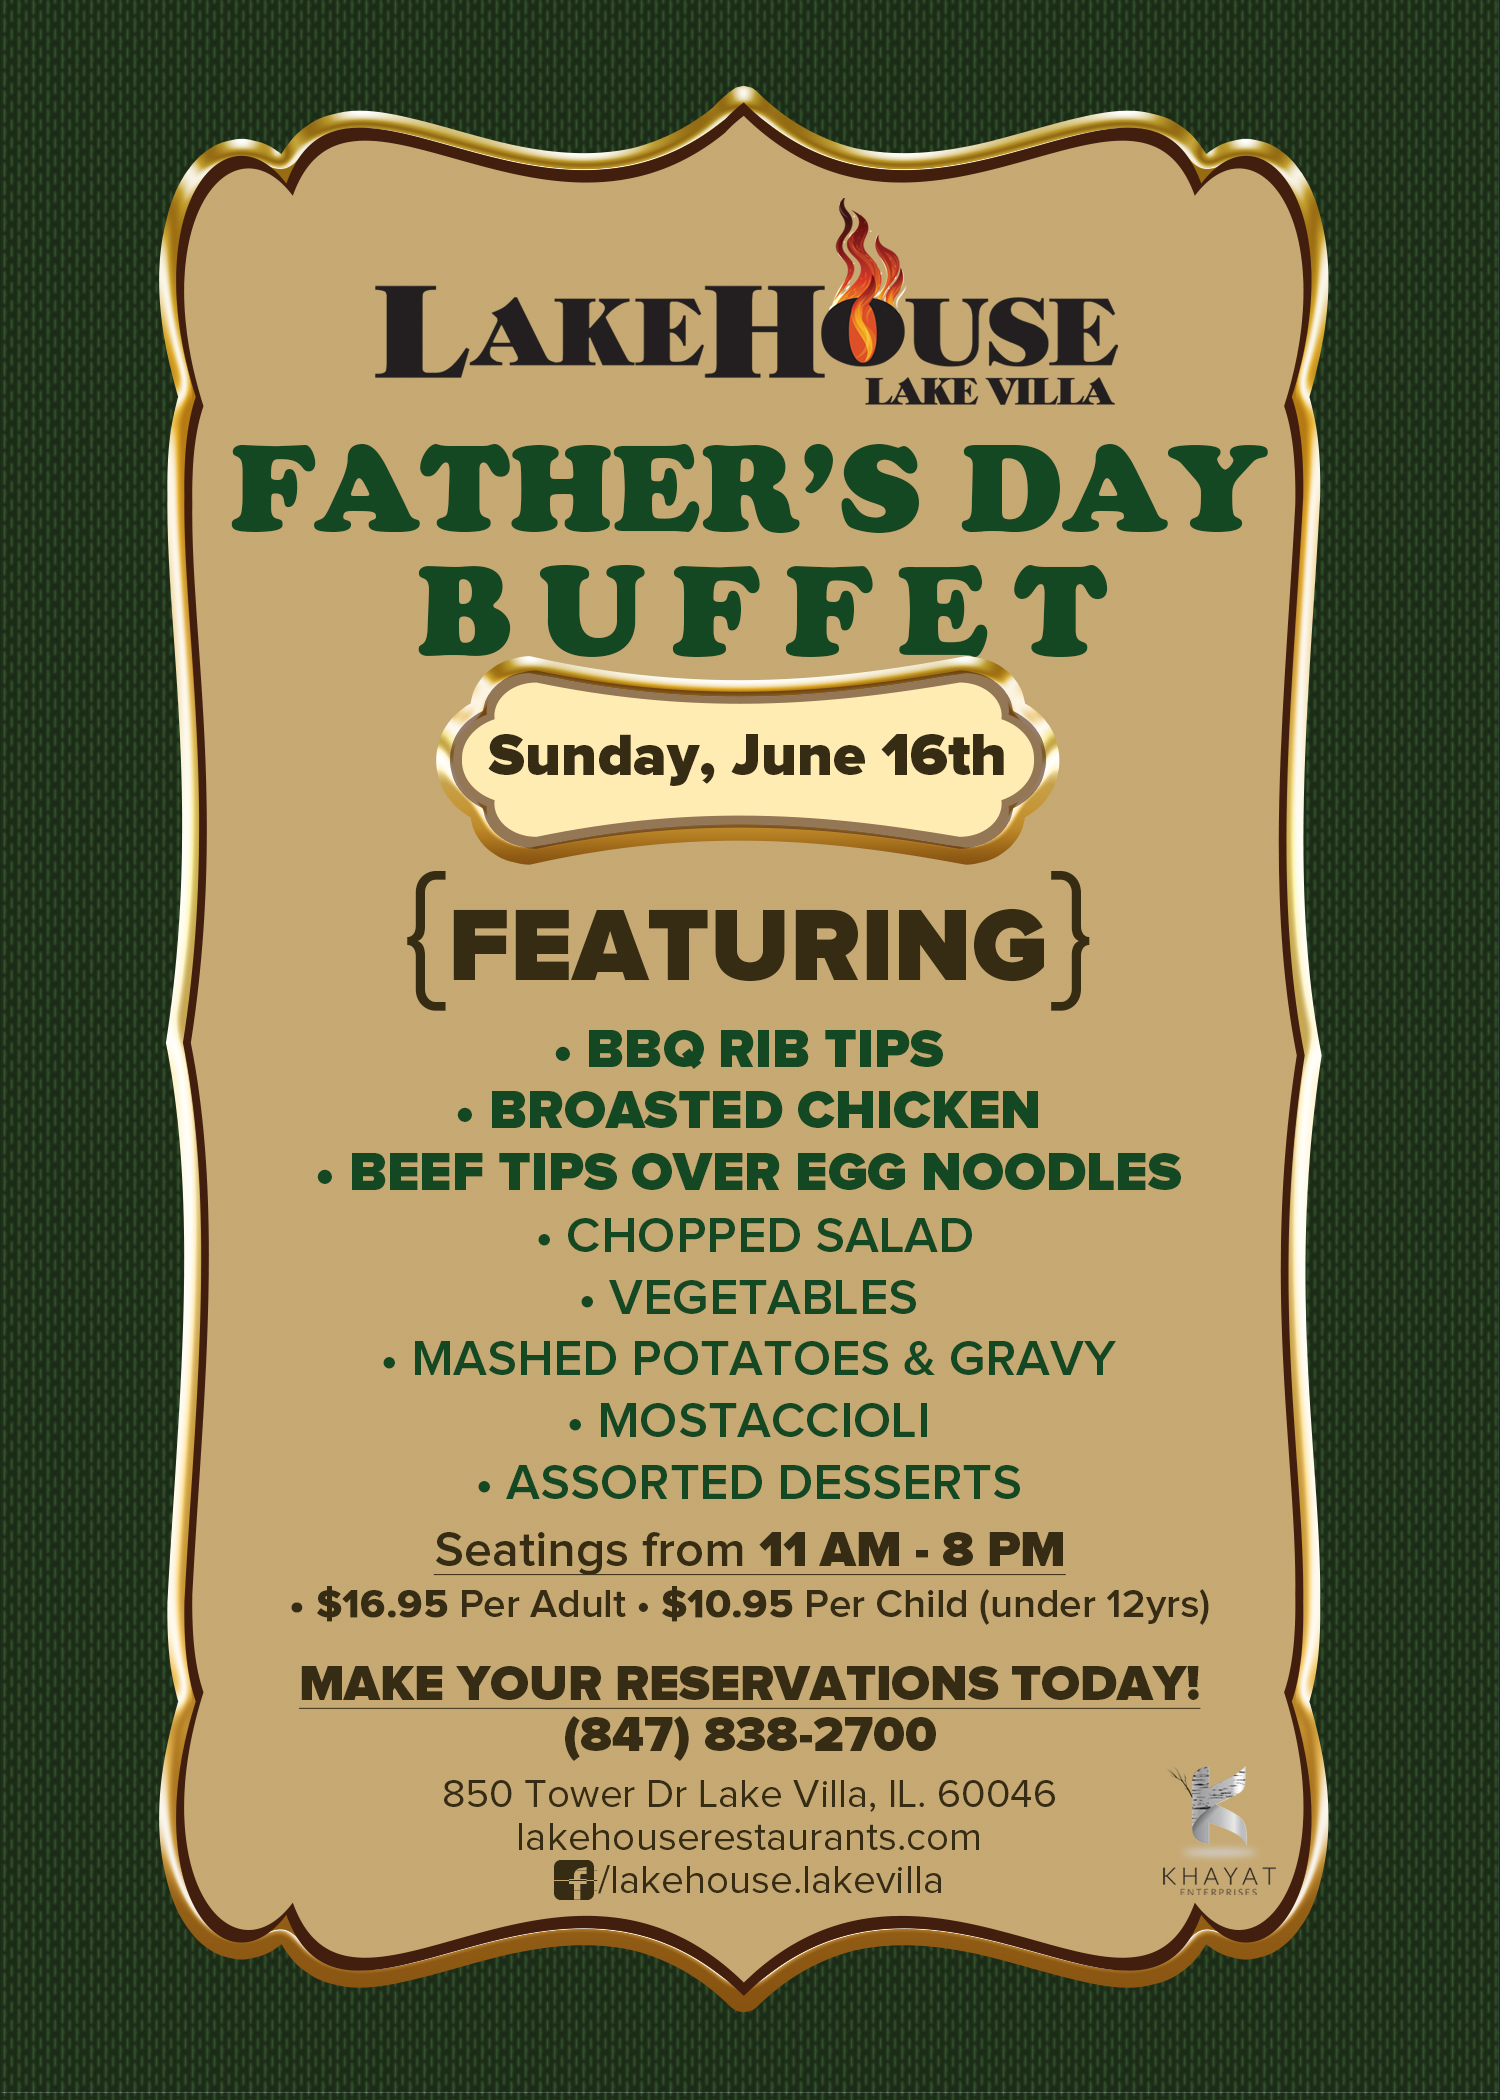 LakeHouse Lake Villa- Father's Day Buffet